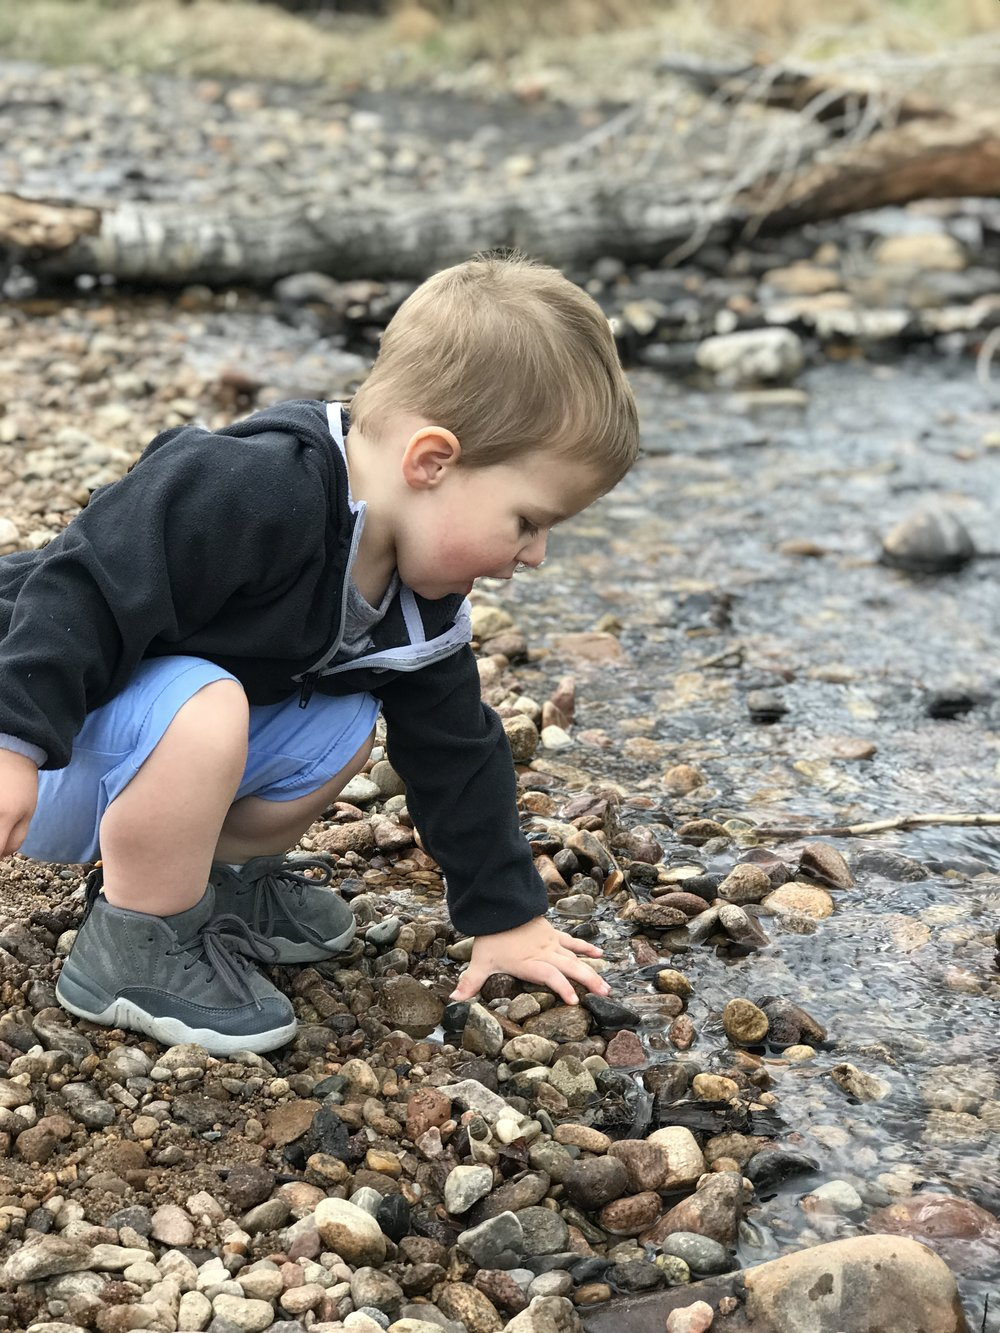 Lincoln loves to throw things.  How crazy is that? We stopped several times along the stream just to throw rocks. It's Always the Small things in life that can bring the most joy.